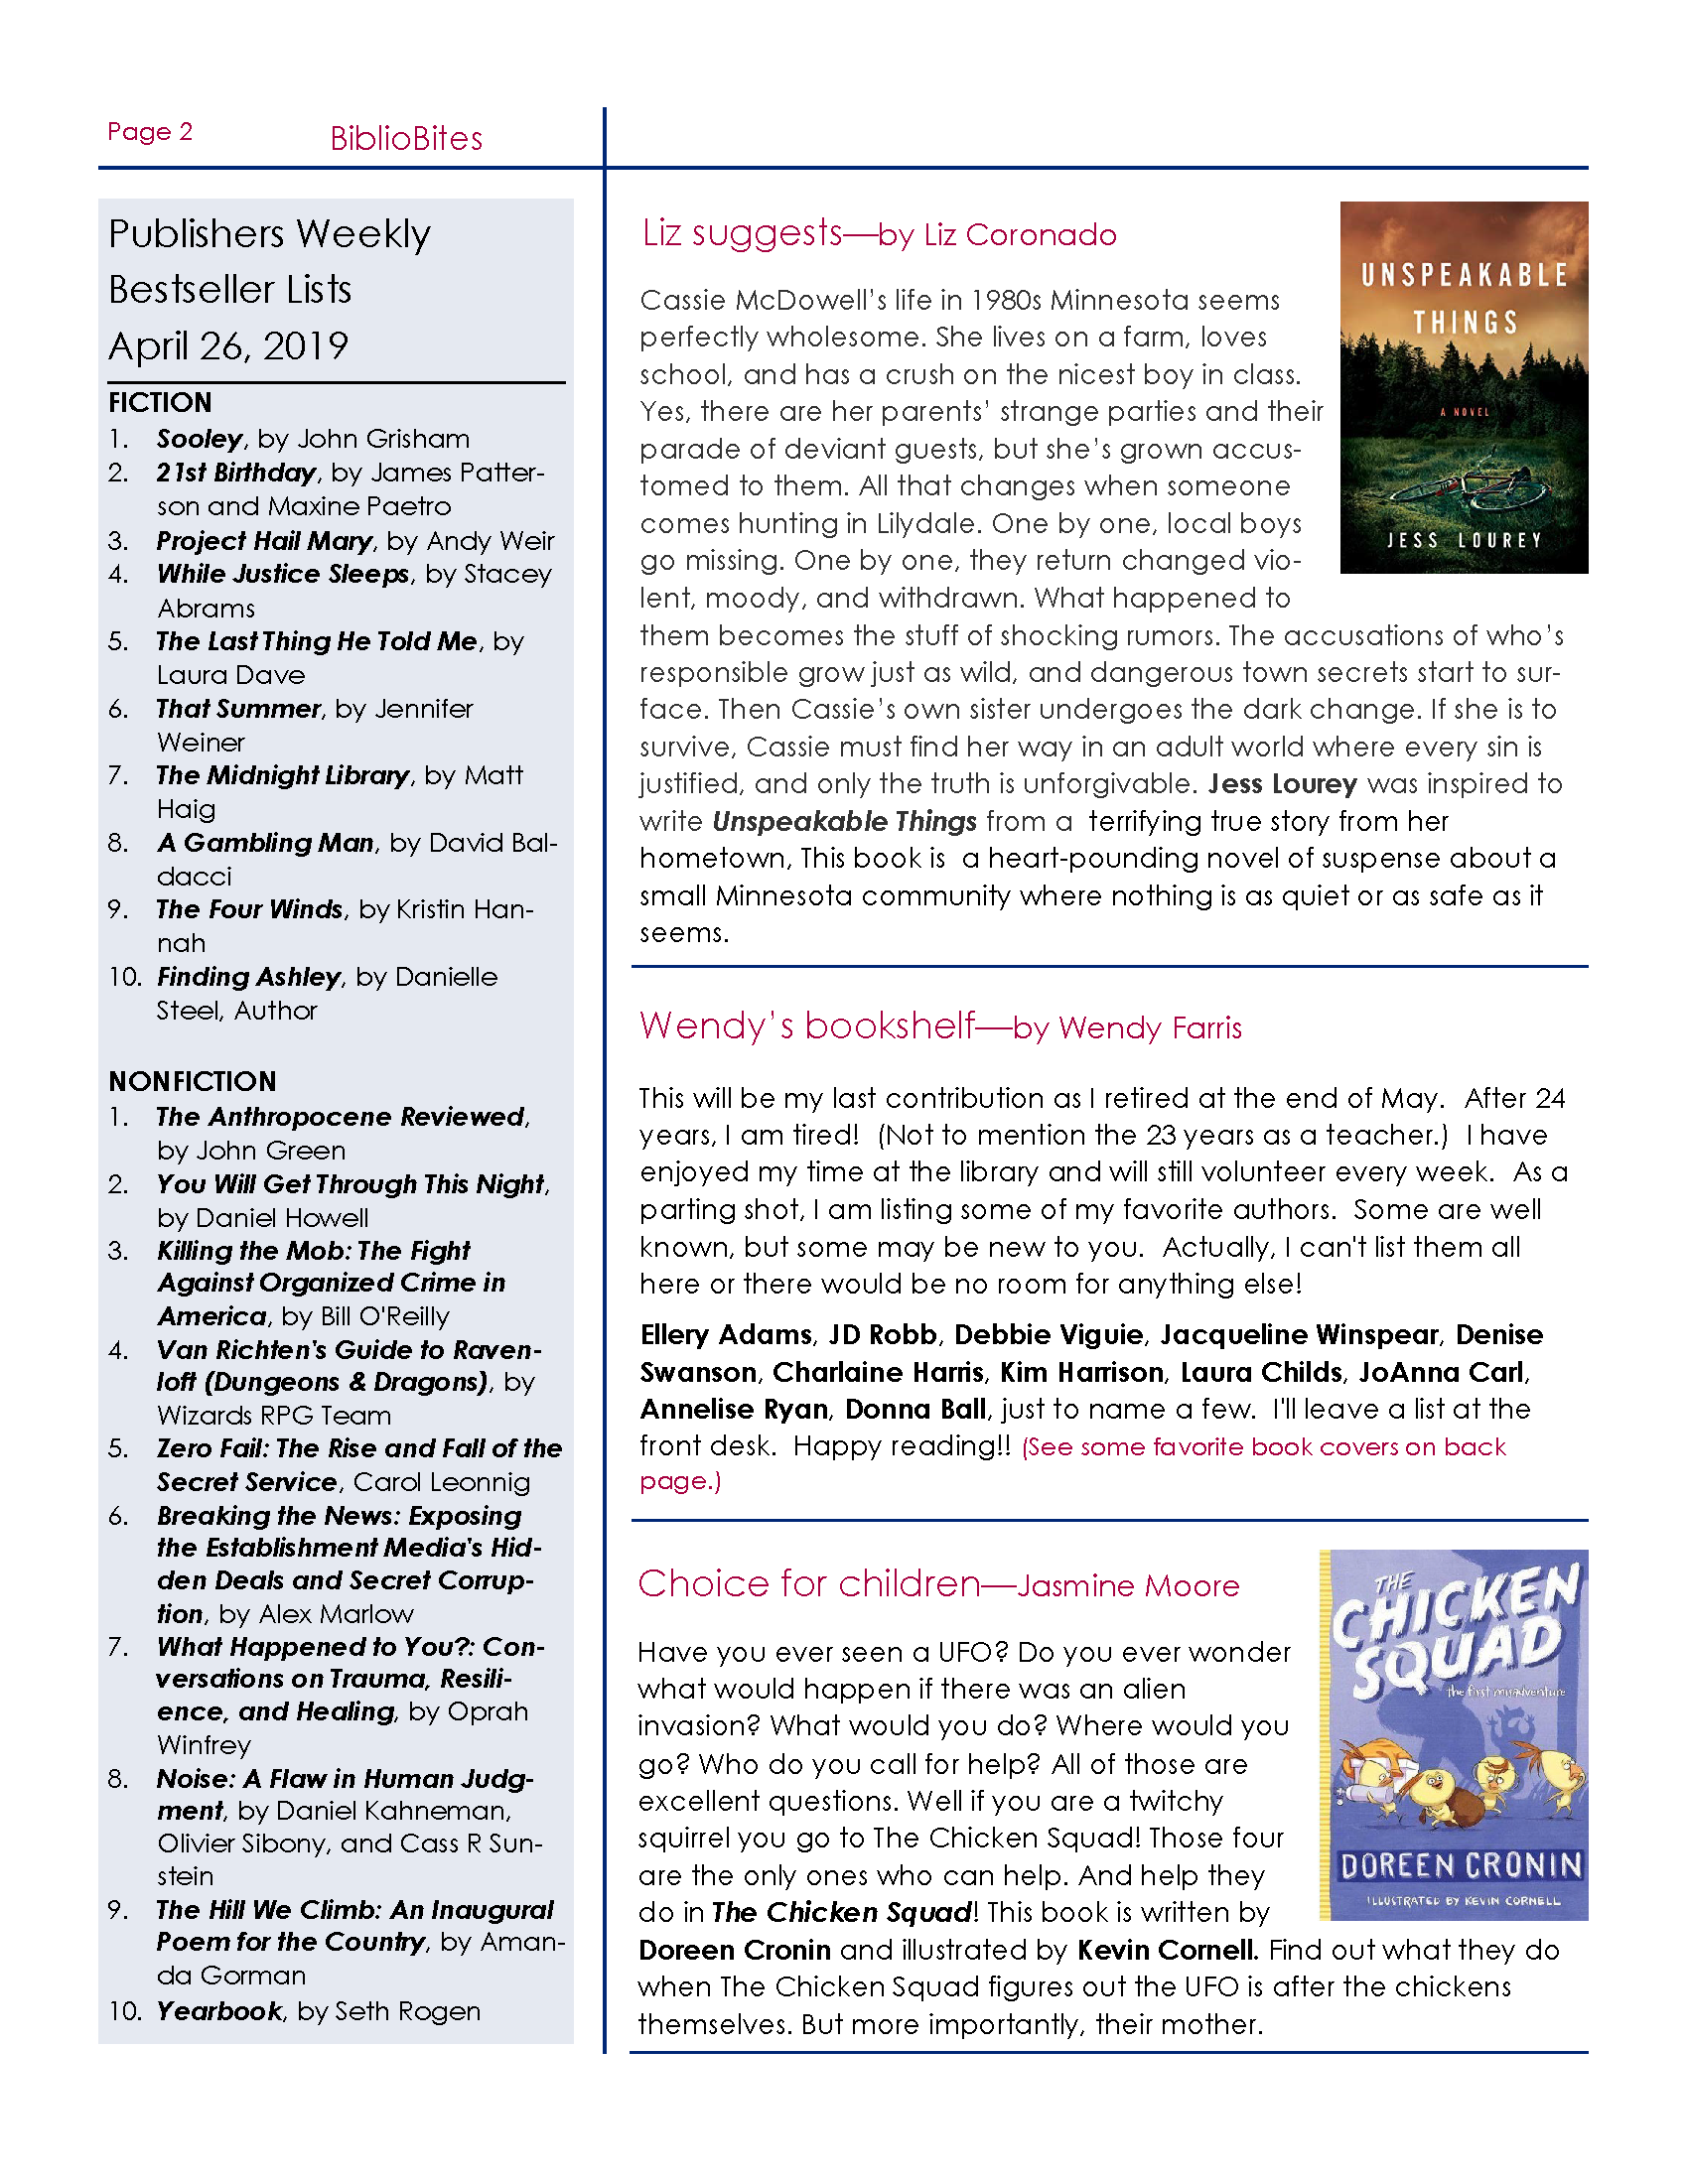 Page 2 of Newsletter